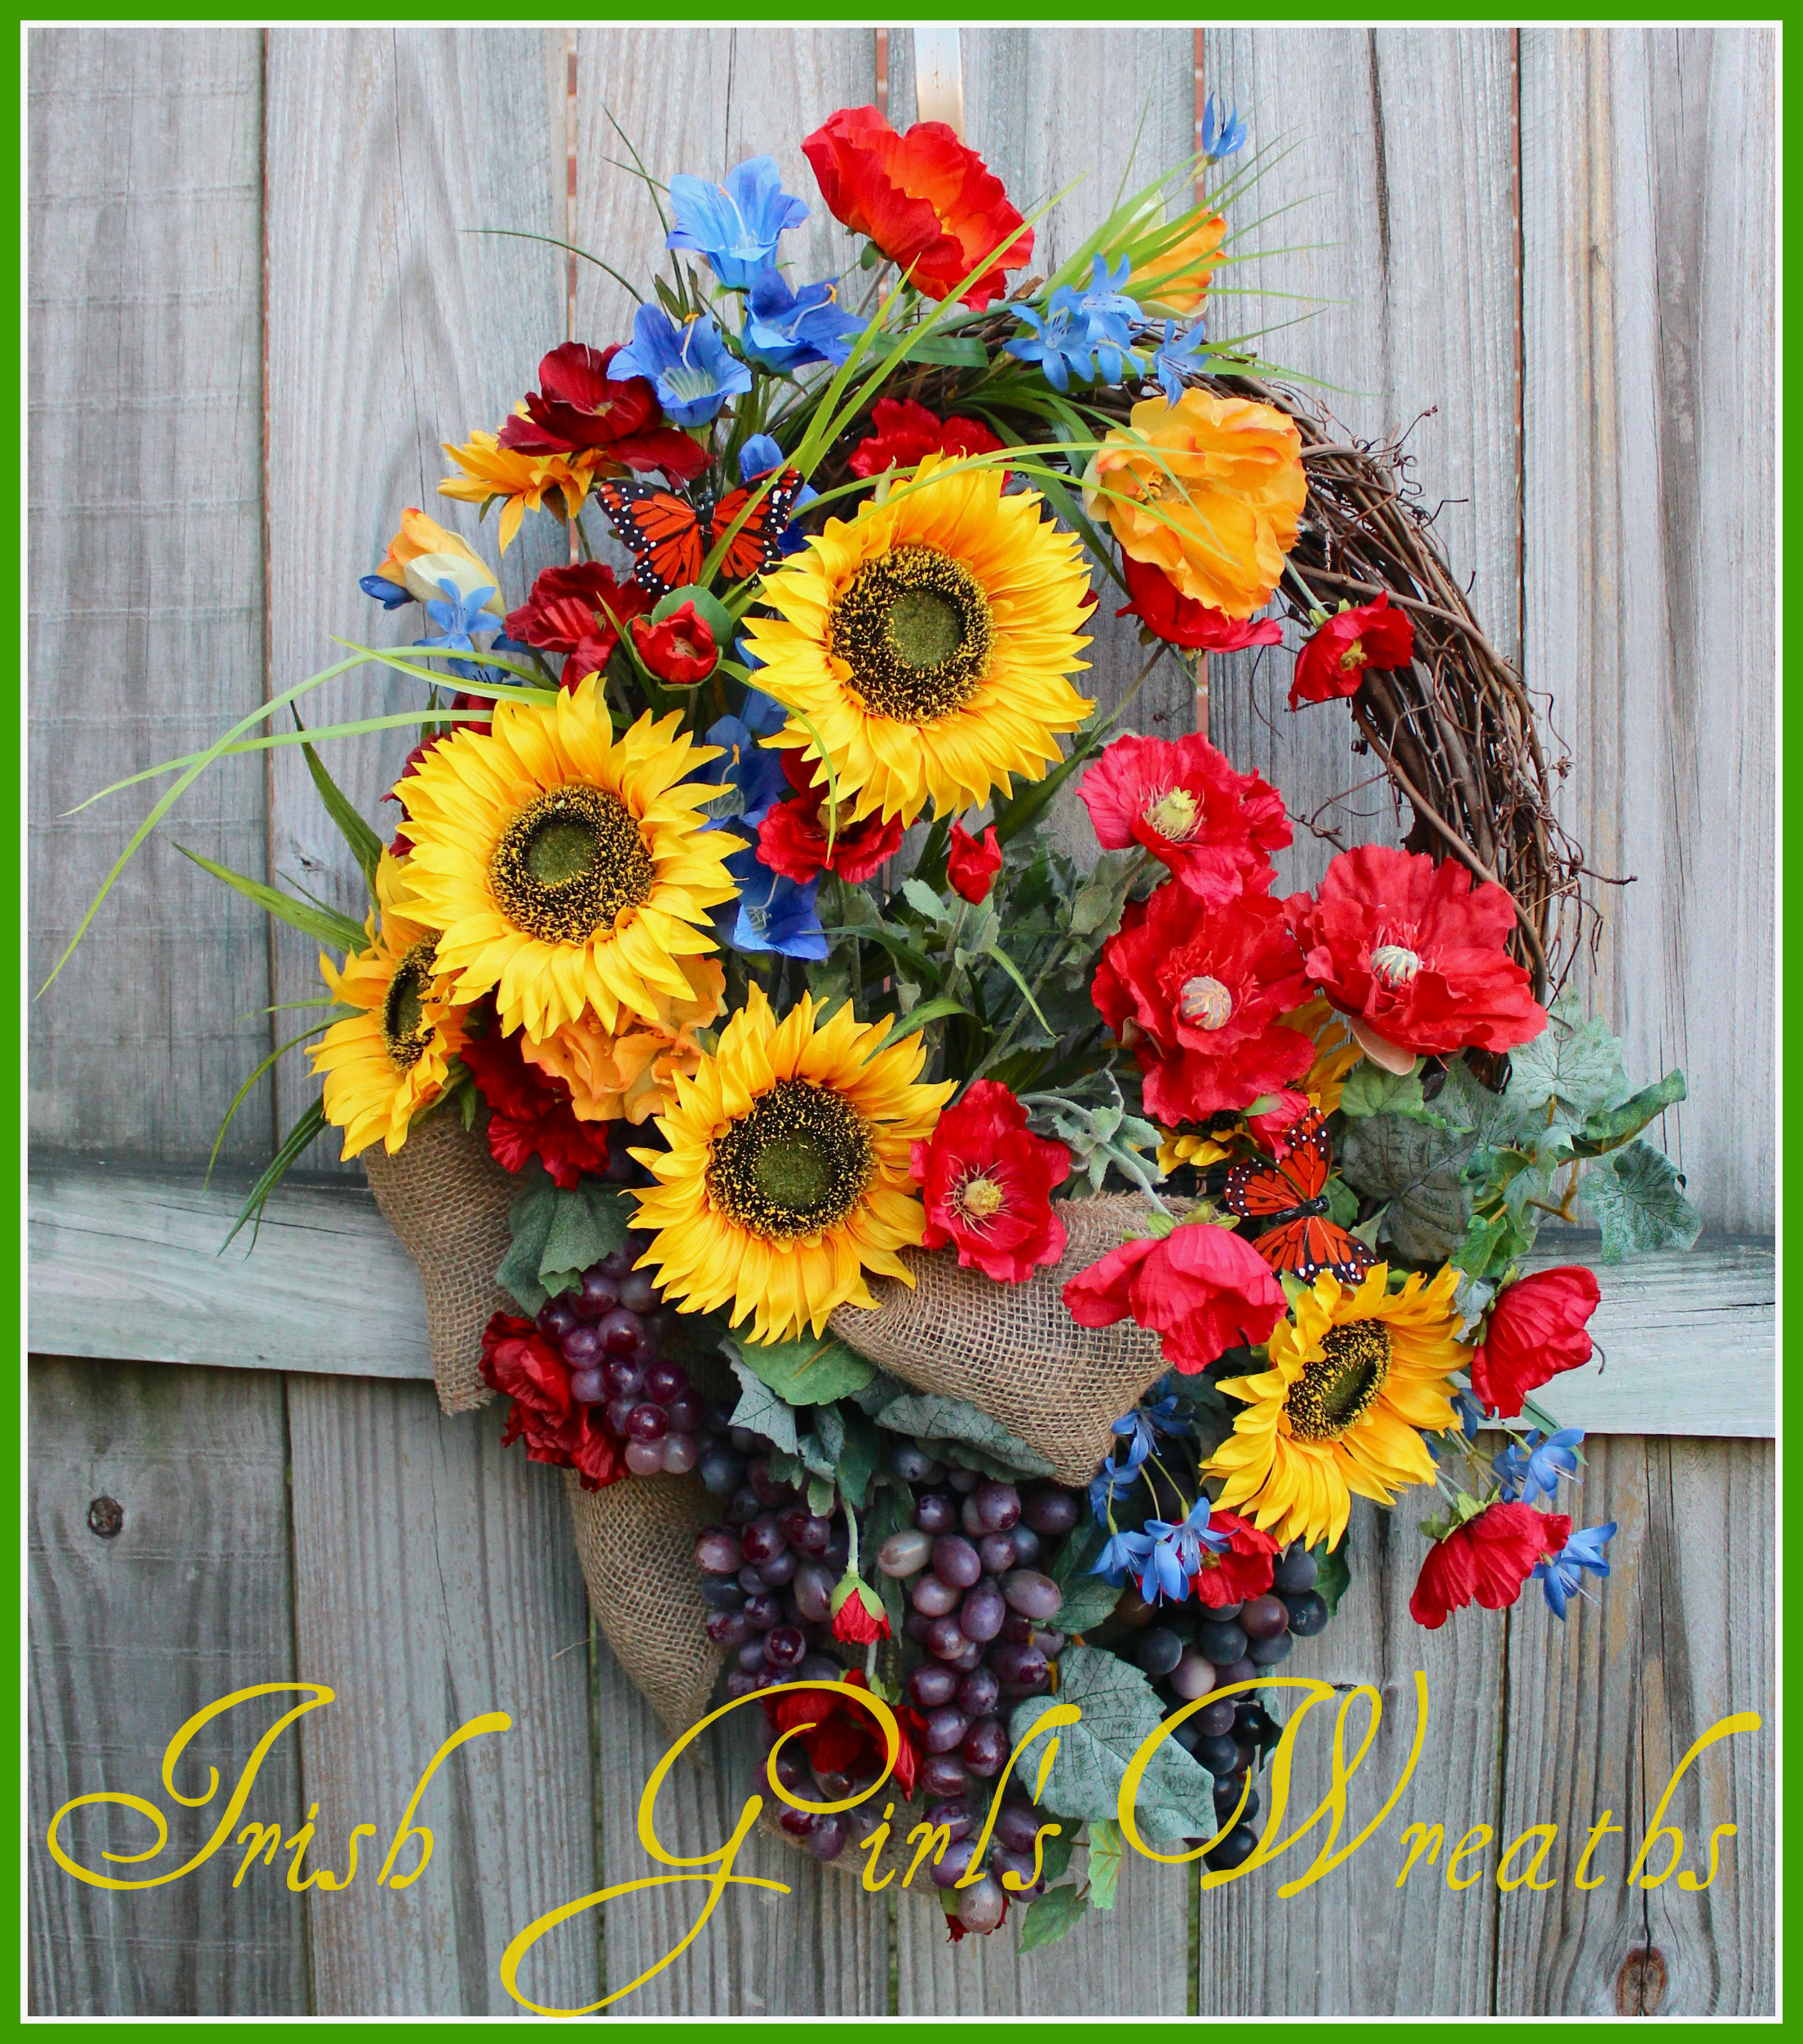 Garden of Italy Sunflower and Poppy Wreath, Custom for Tavish